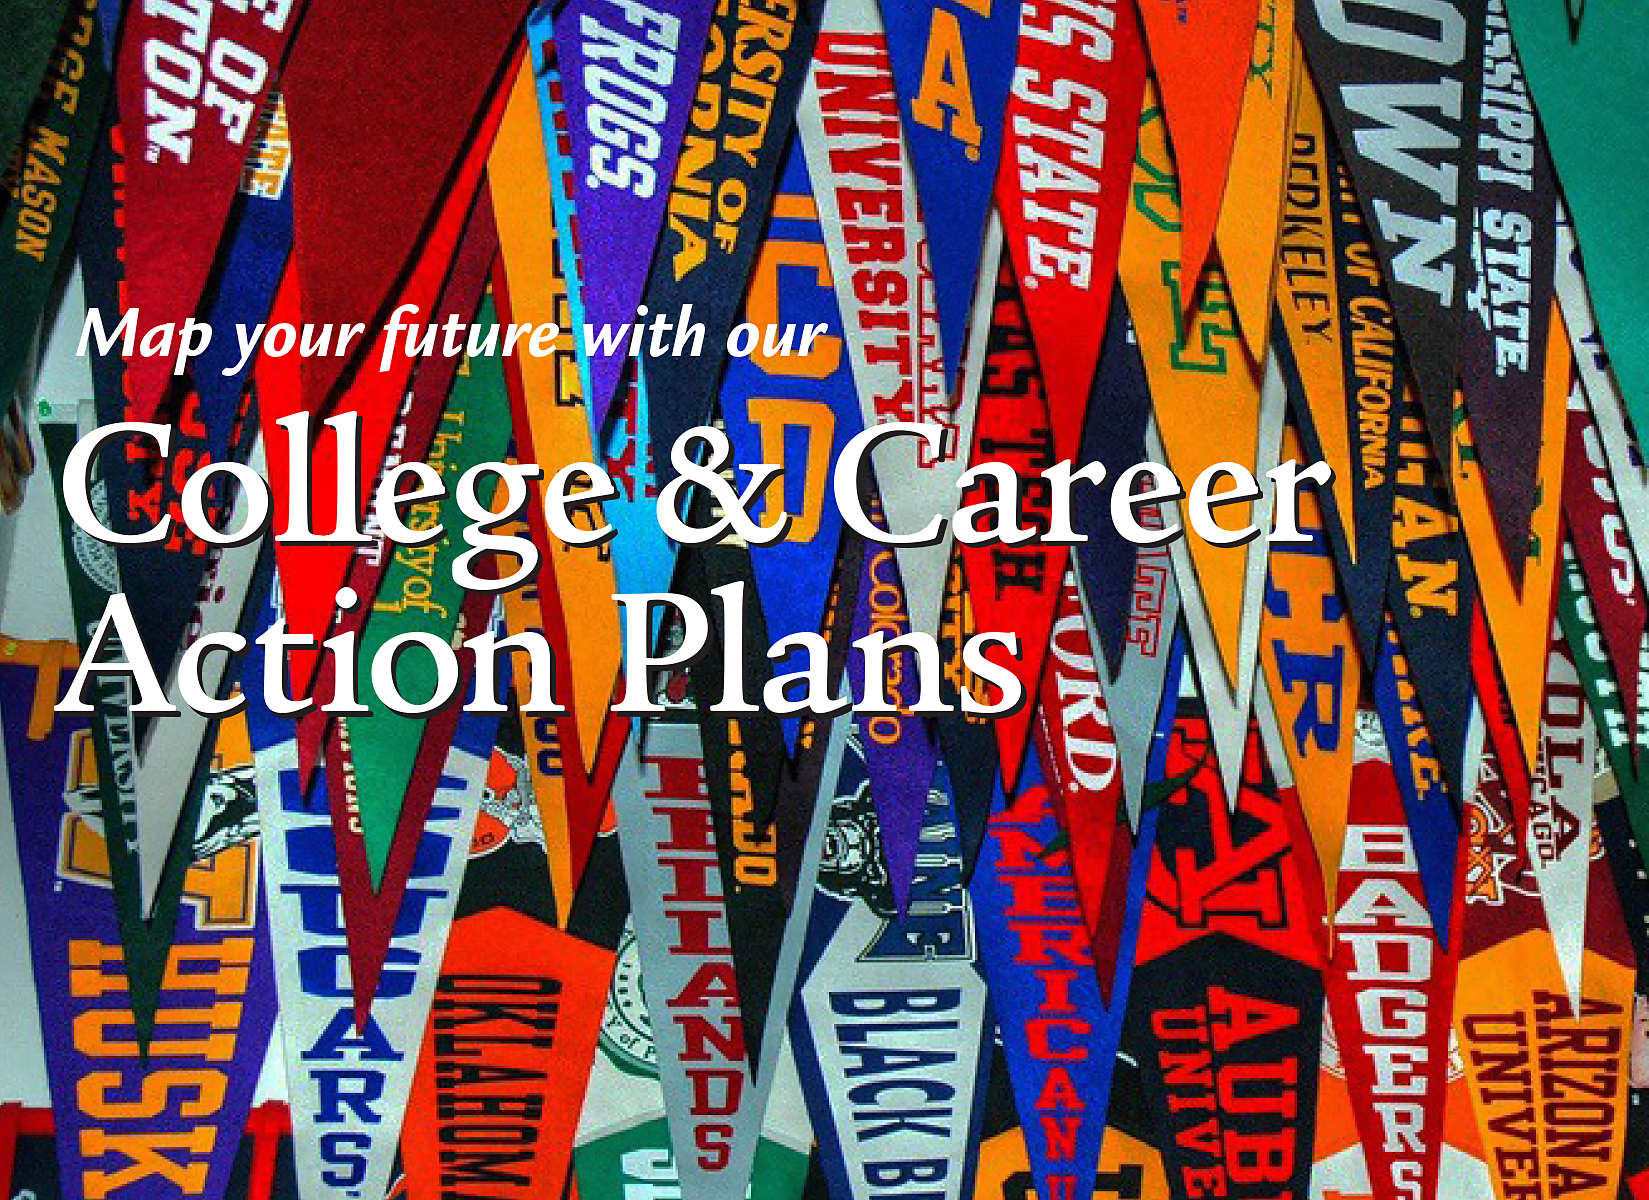 College Career Action Plan Ad